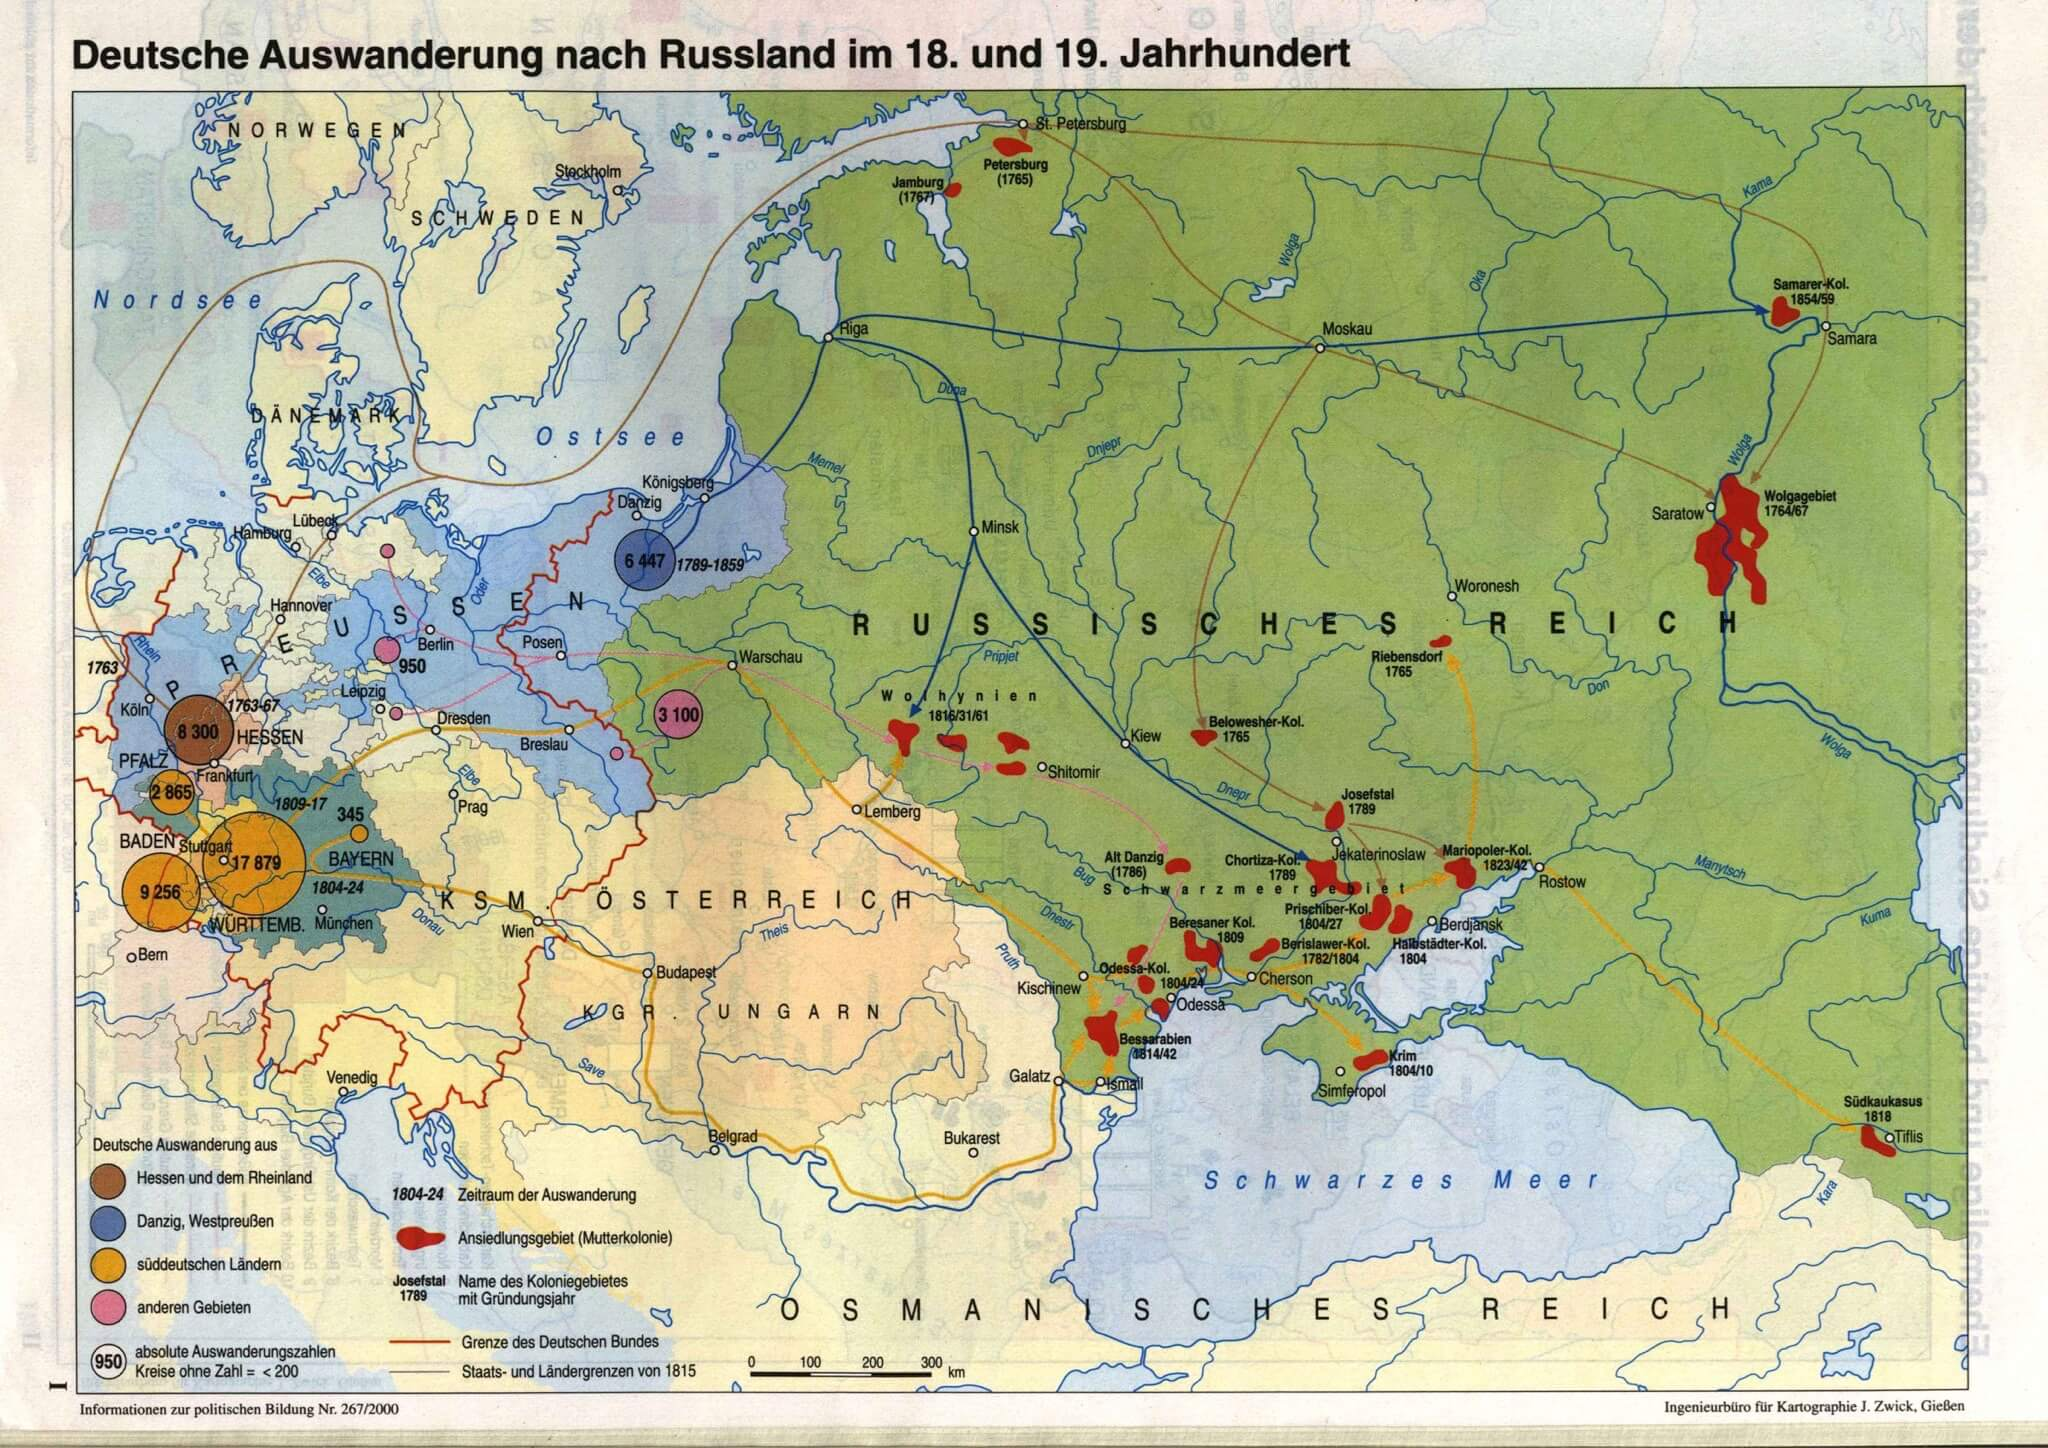 The Tragic Saga of the Volga Germans